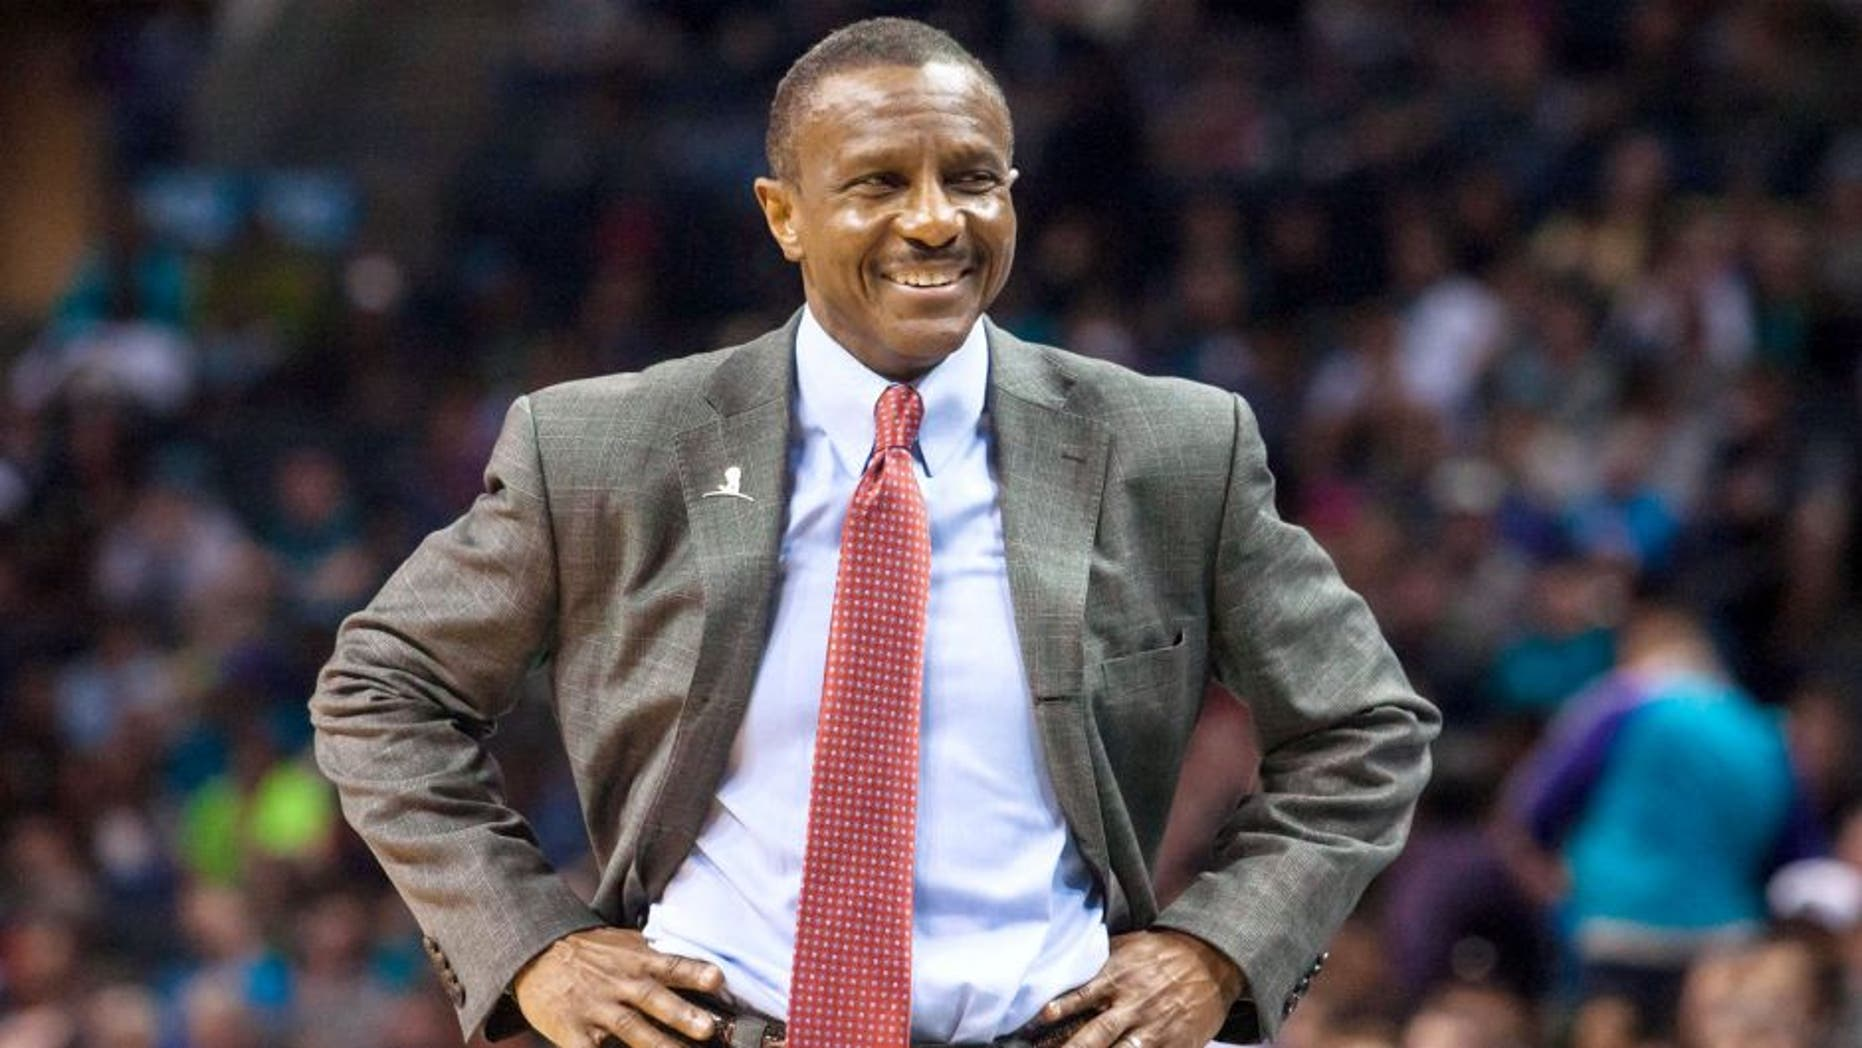 Mar 6, 2015; Charlotte, NC, USA; Toronto Raptors head coach Dwane Casey reacts after a foul call during the second half against the Charlotte Hornets at Time Warner Cable Arena. The Hornets defeated the Raptors 103-94. Mandatory Credit: Jeremy Brevard-USA TODAY Sports